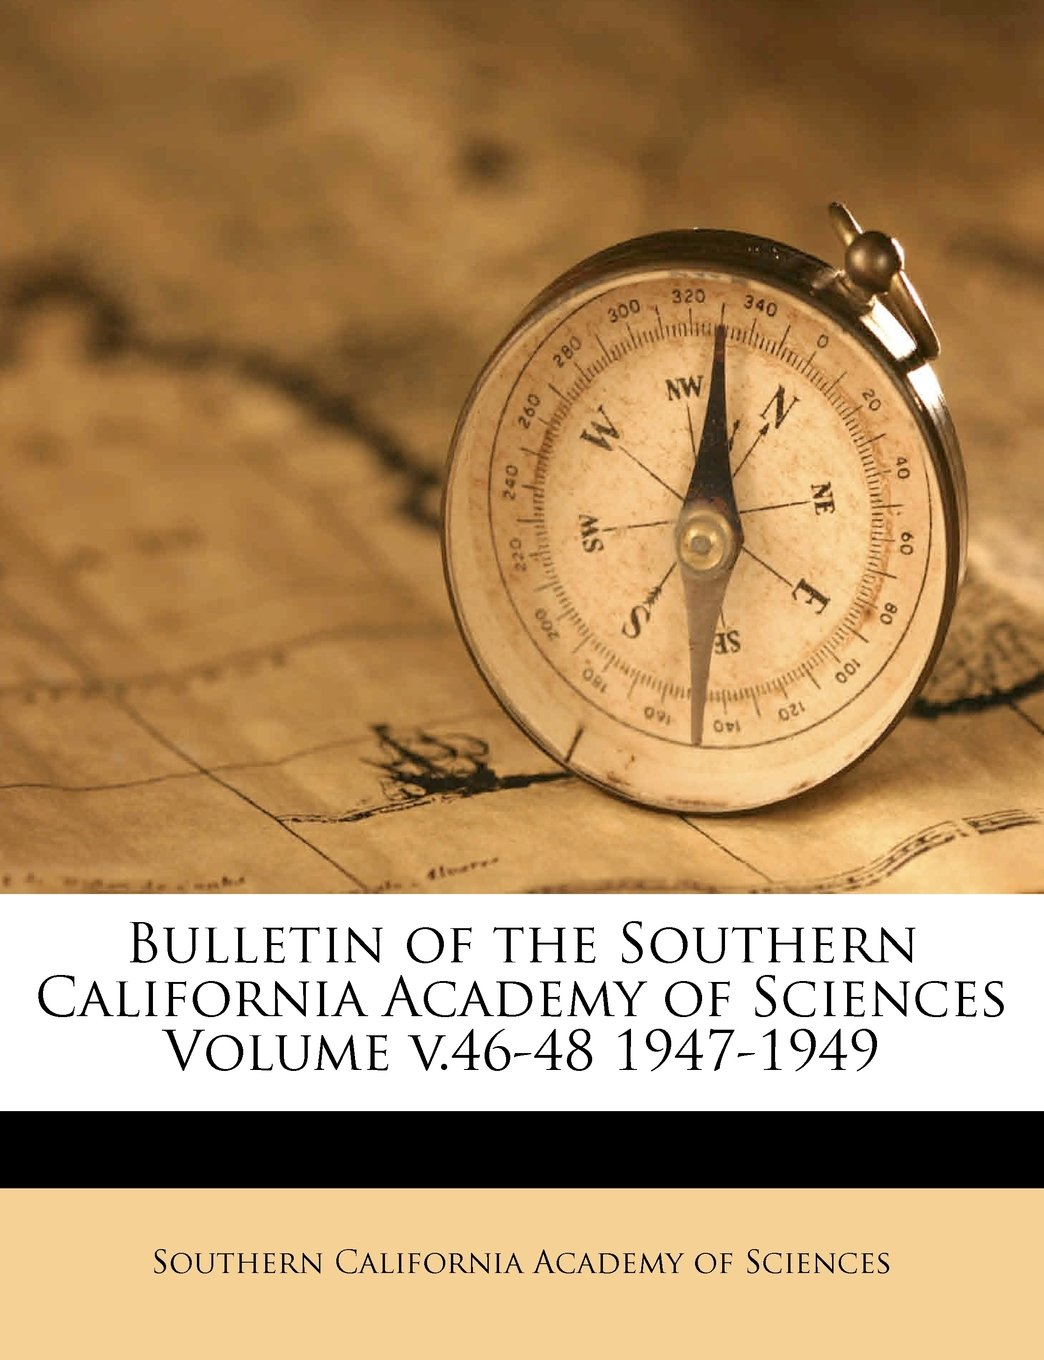 Download Bulletin of the Southern California Academy of Sciences Volume v.46-48 1947-1949 PDF